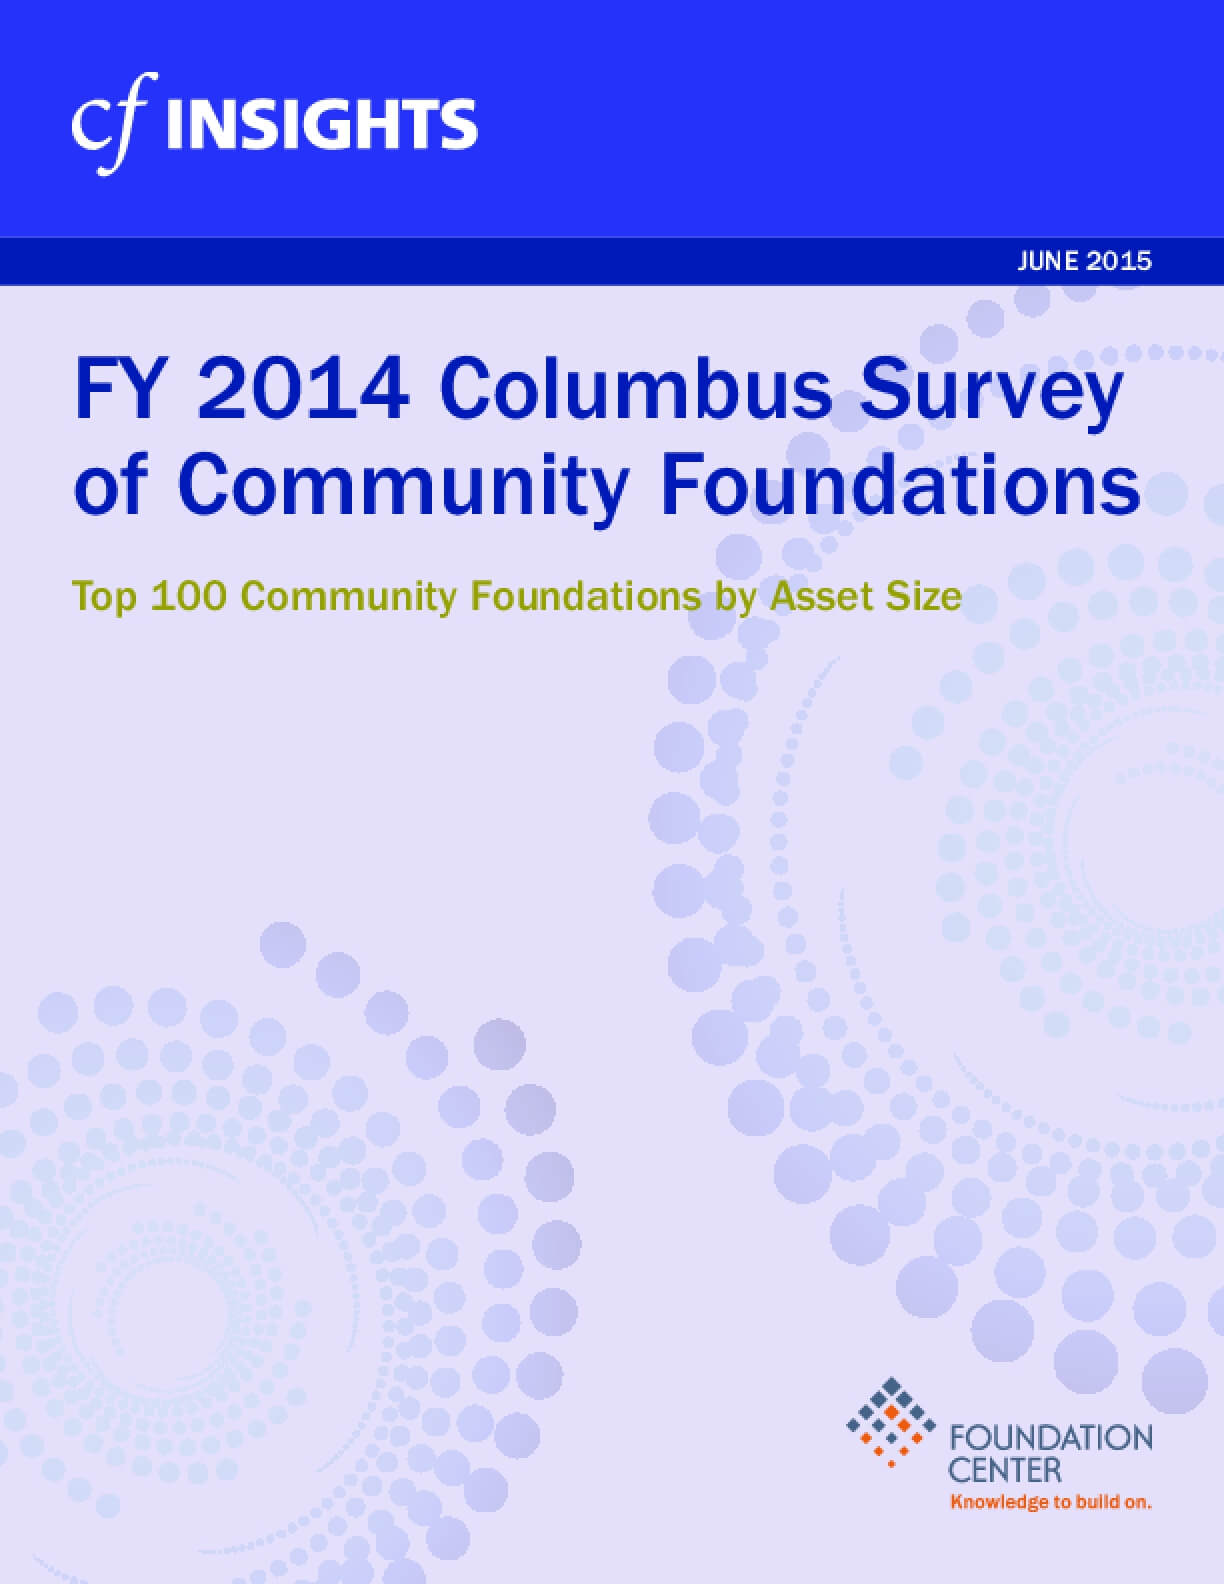 2014 Columbus Survey of Community Foundations: List of Top 100 Community Foundations by Asset Size